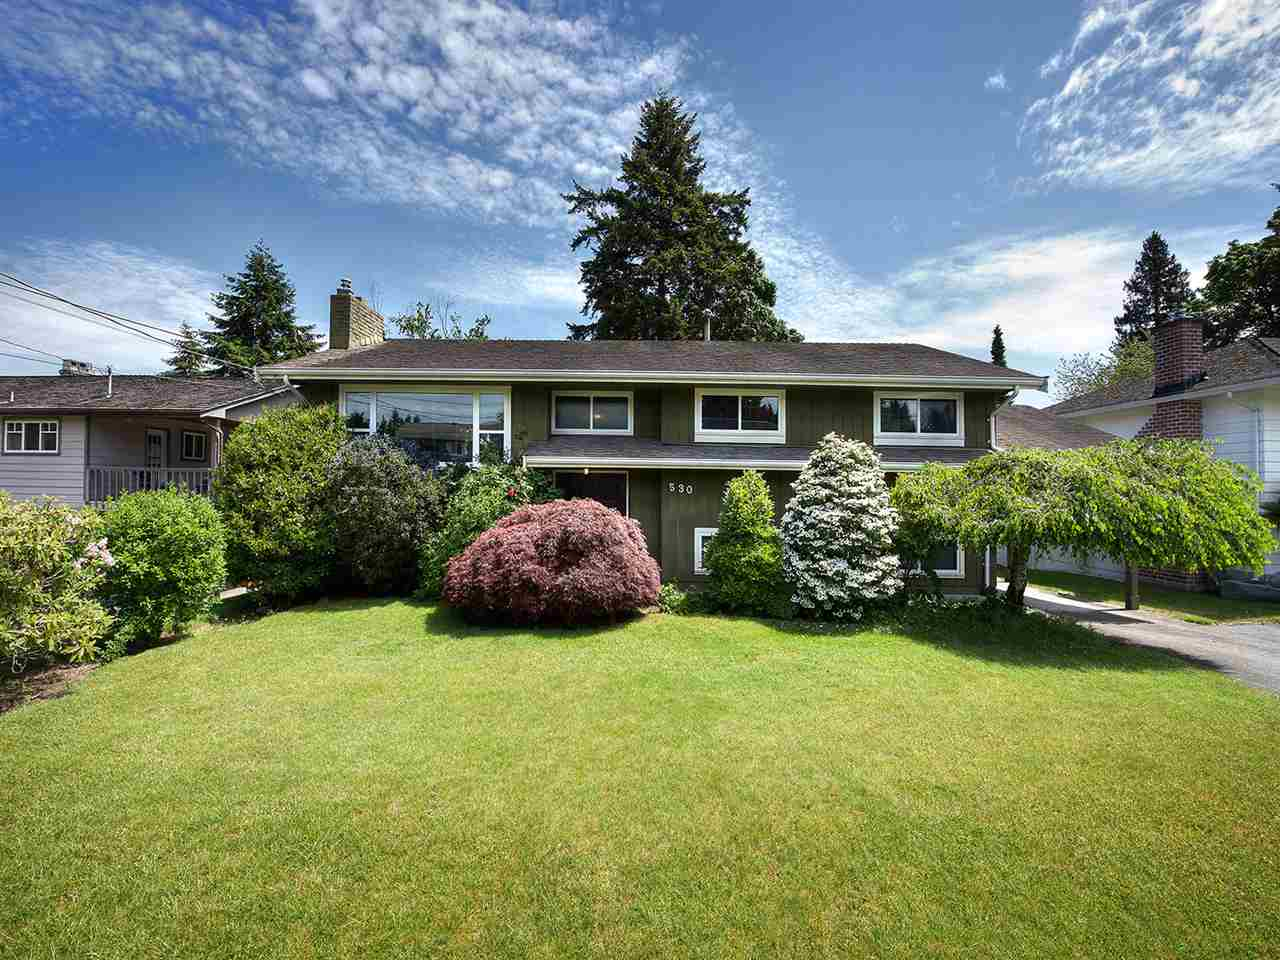 Main Photo: 530 55 Street in Delta: Pebble Hill House for sale (Tsawwassen)  : MLS(r) # R2172625